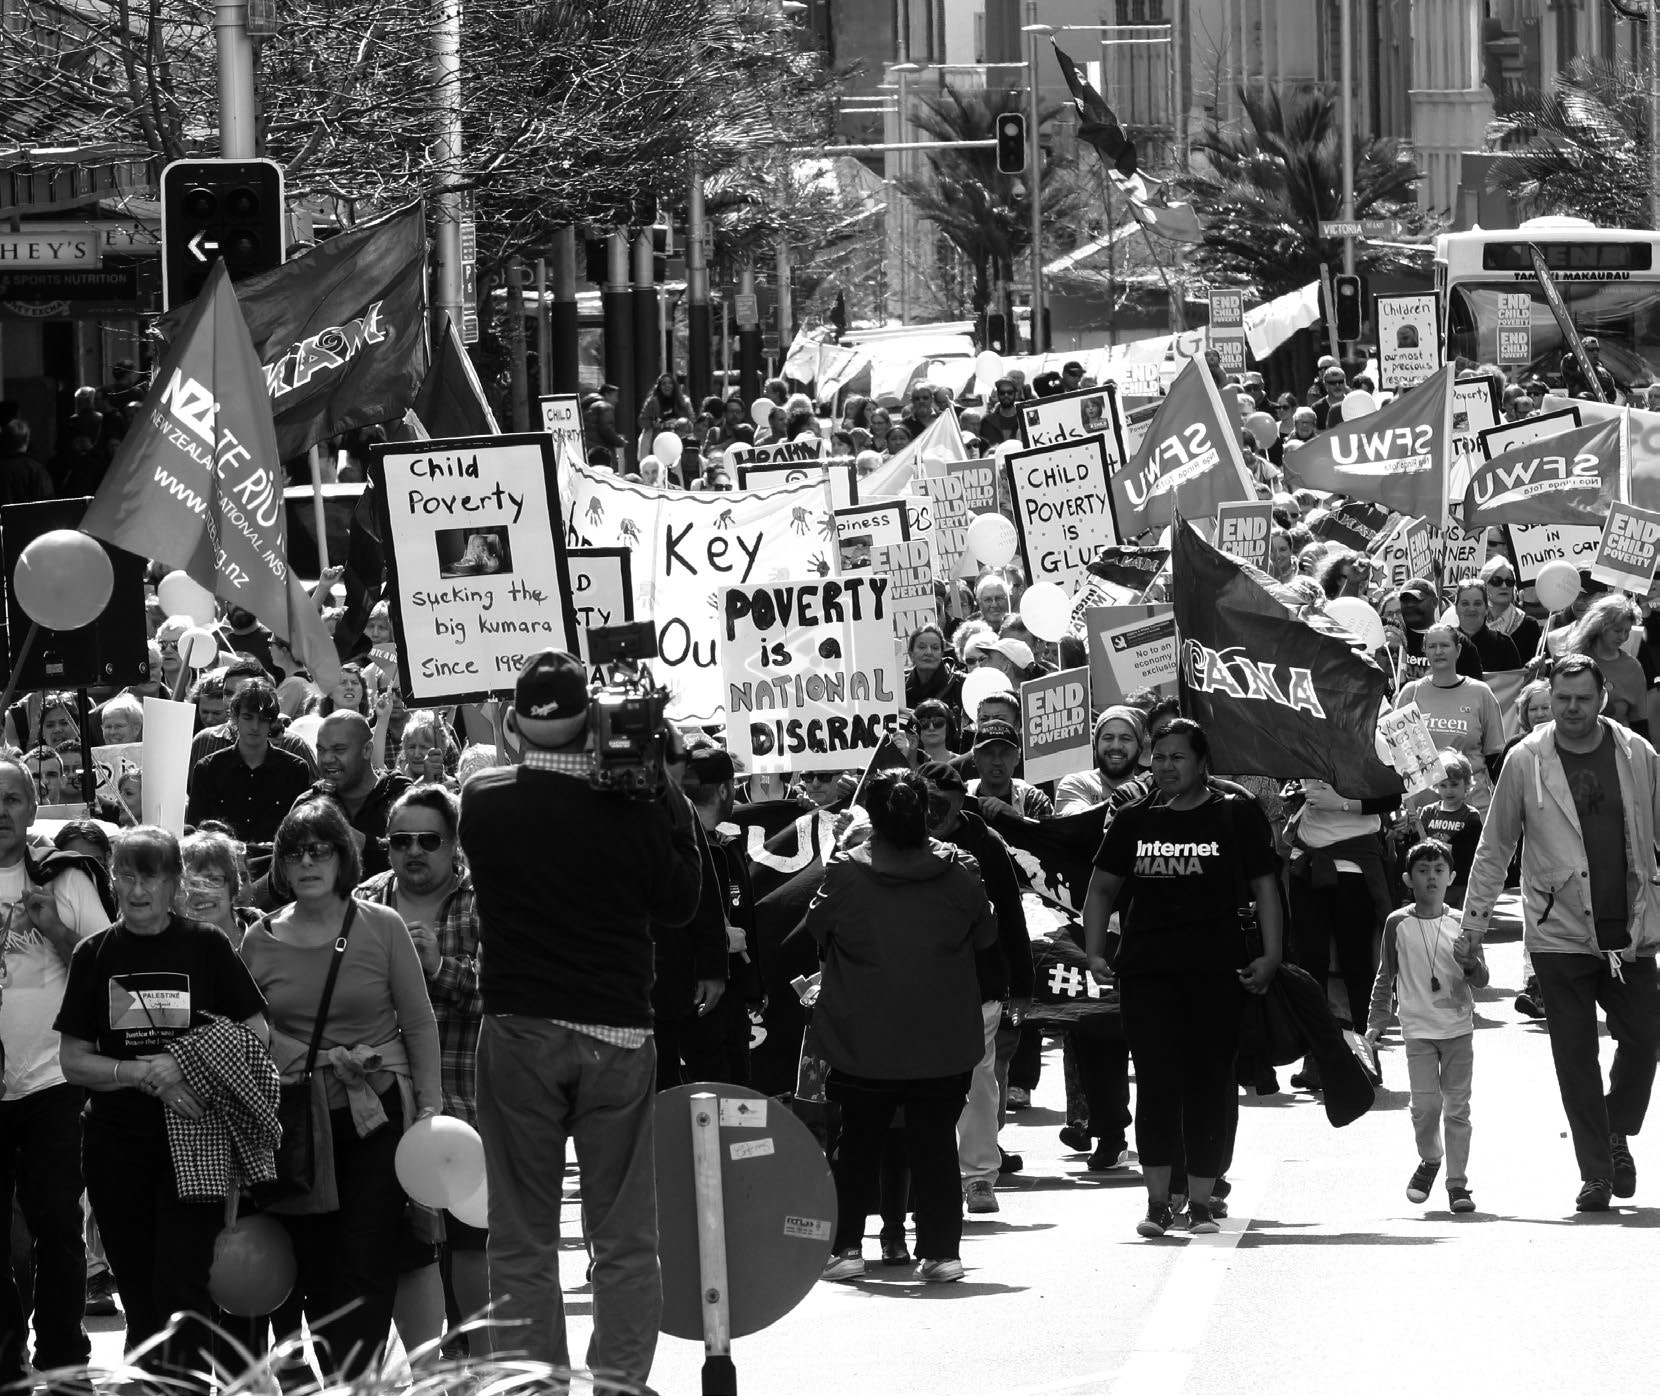 Hikoi demonstration against child poverty in Queen Street, Auckland.